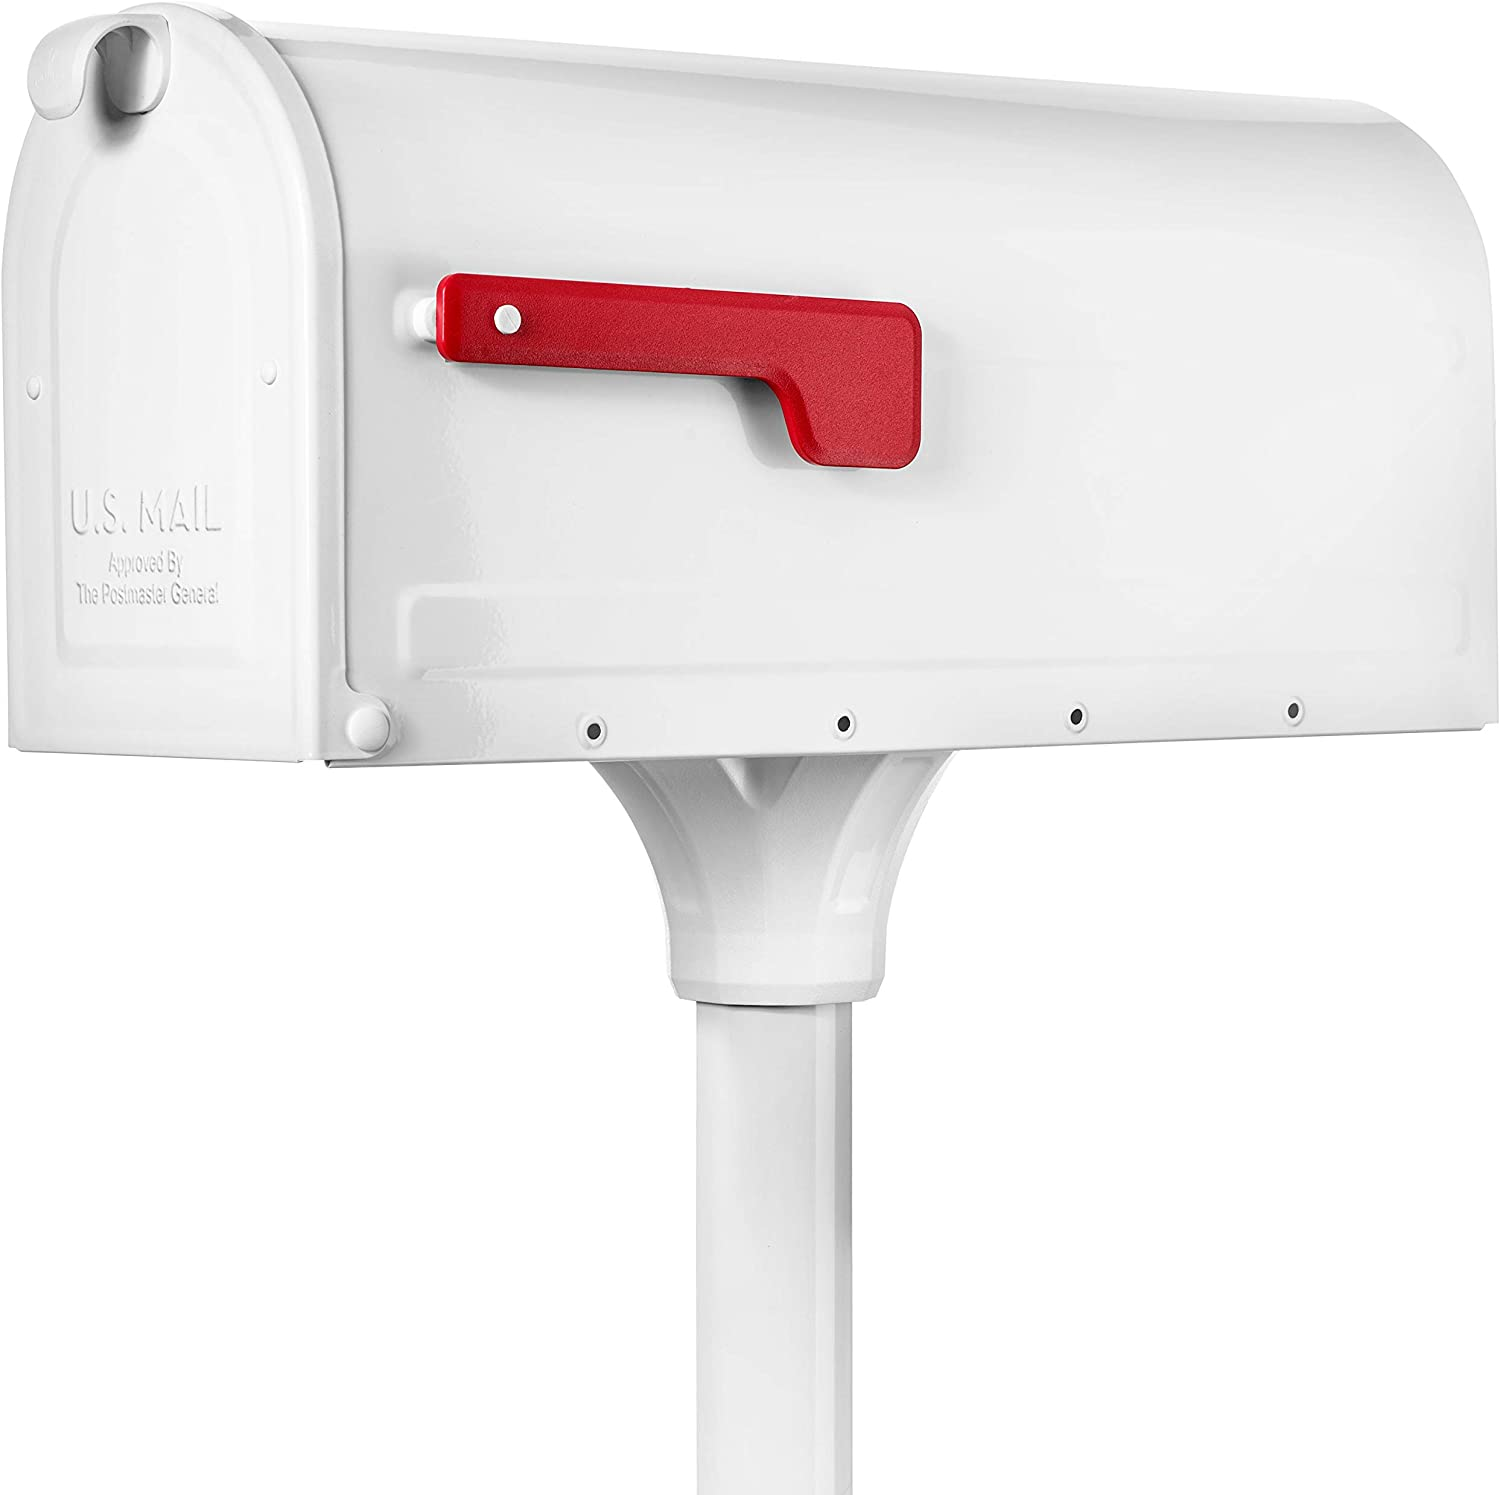 Ranking TOP15 Architectural 2021 Mailboxes 7680W-10 MB1 Kit Mailbox White